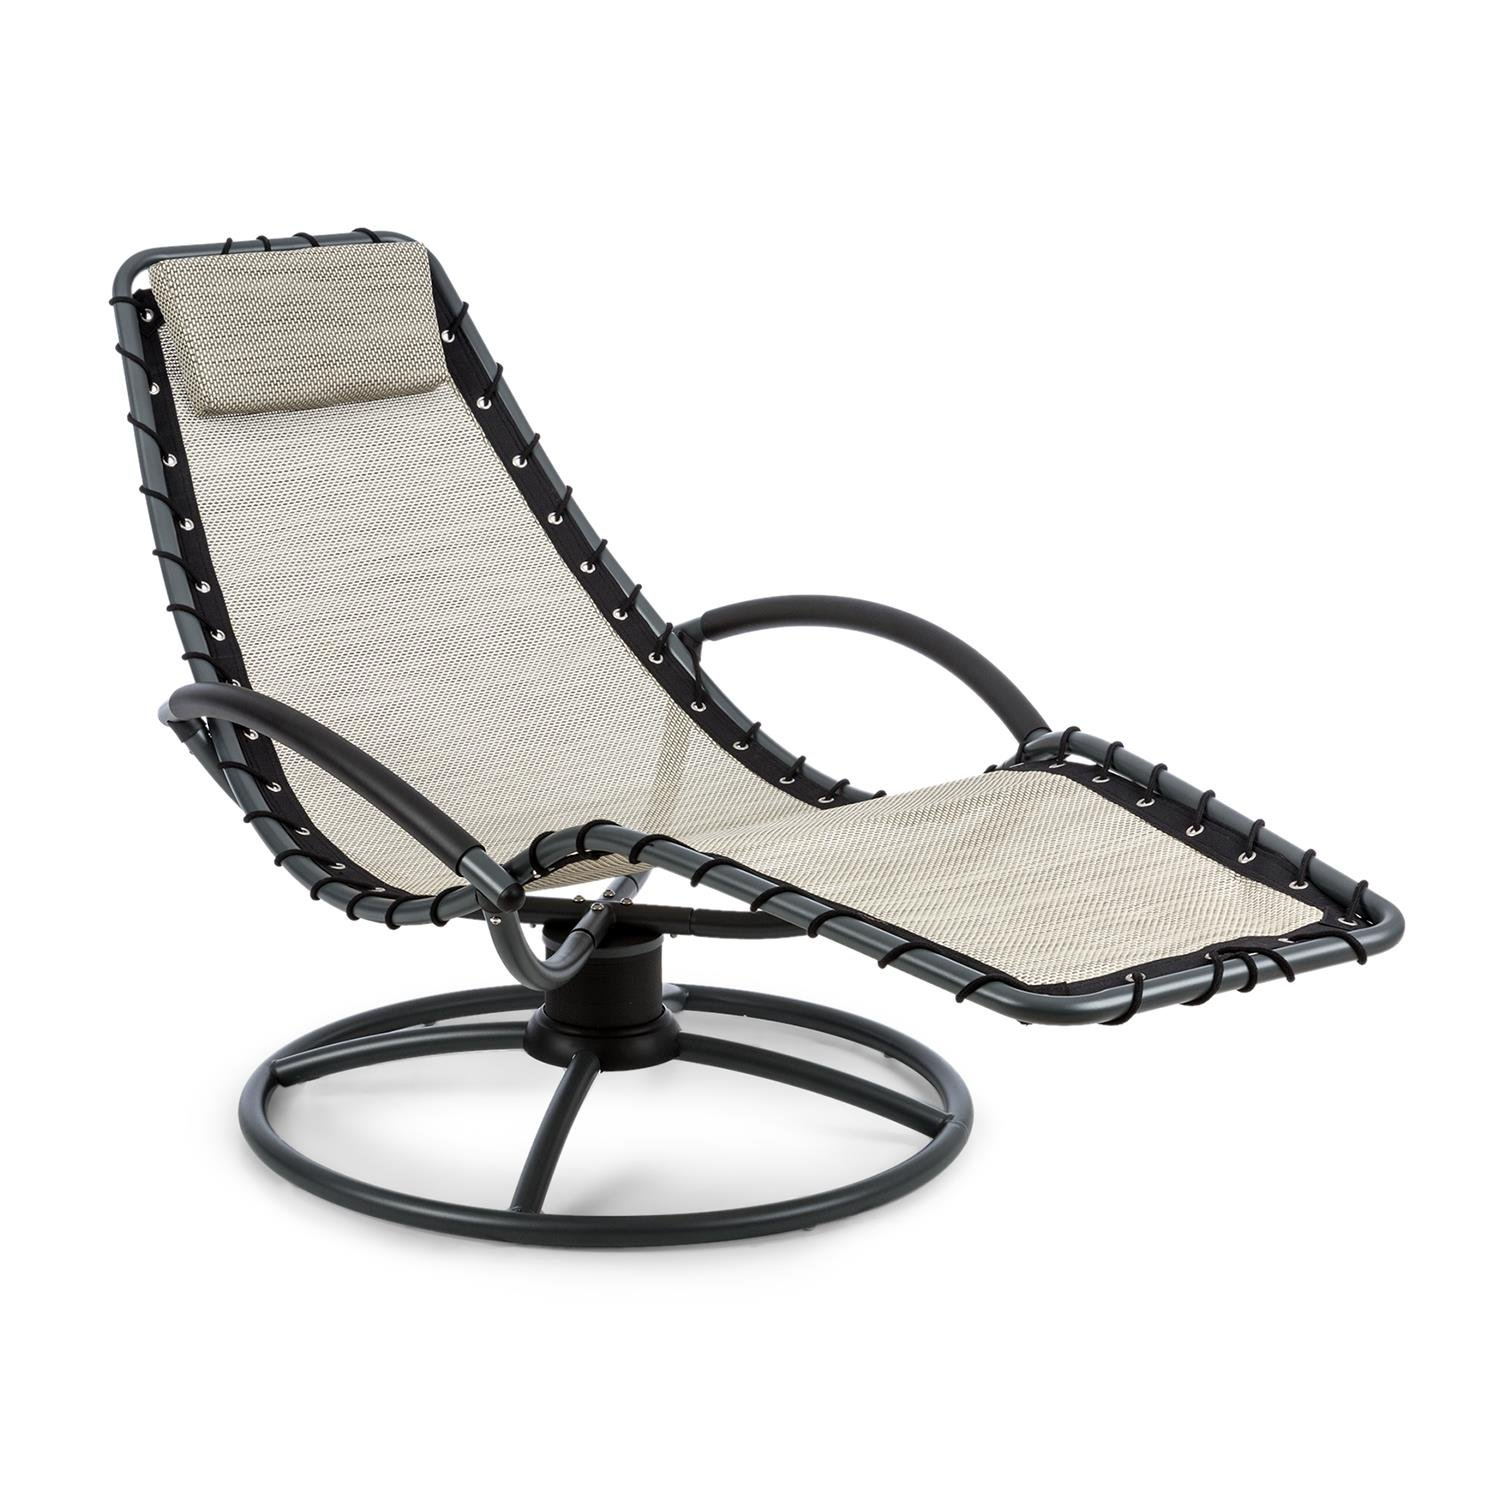 Blumfeldt The Chiller Swing Lounger Garden Lounger Deck Chair 77 x 85 x 173 cm Easy Care and Weatherproof 360 ° Comfort Swing Motion ComfortMesh Sturdy Tubular Steel Beige